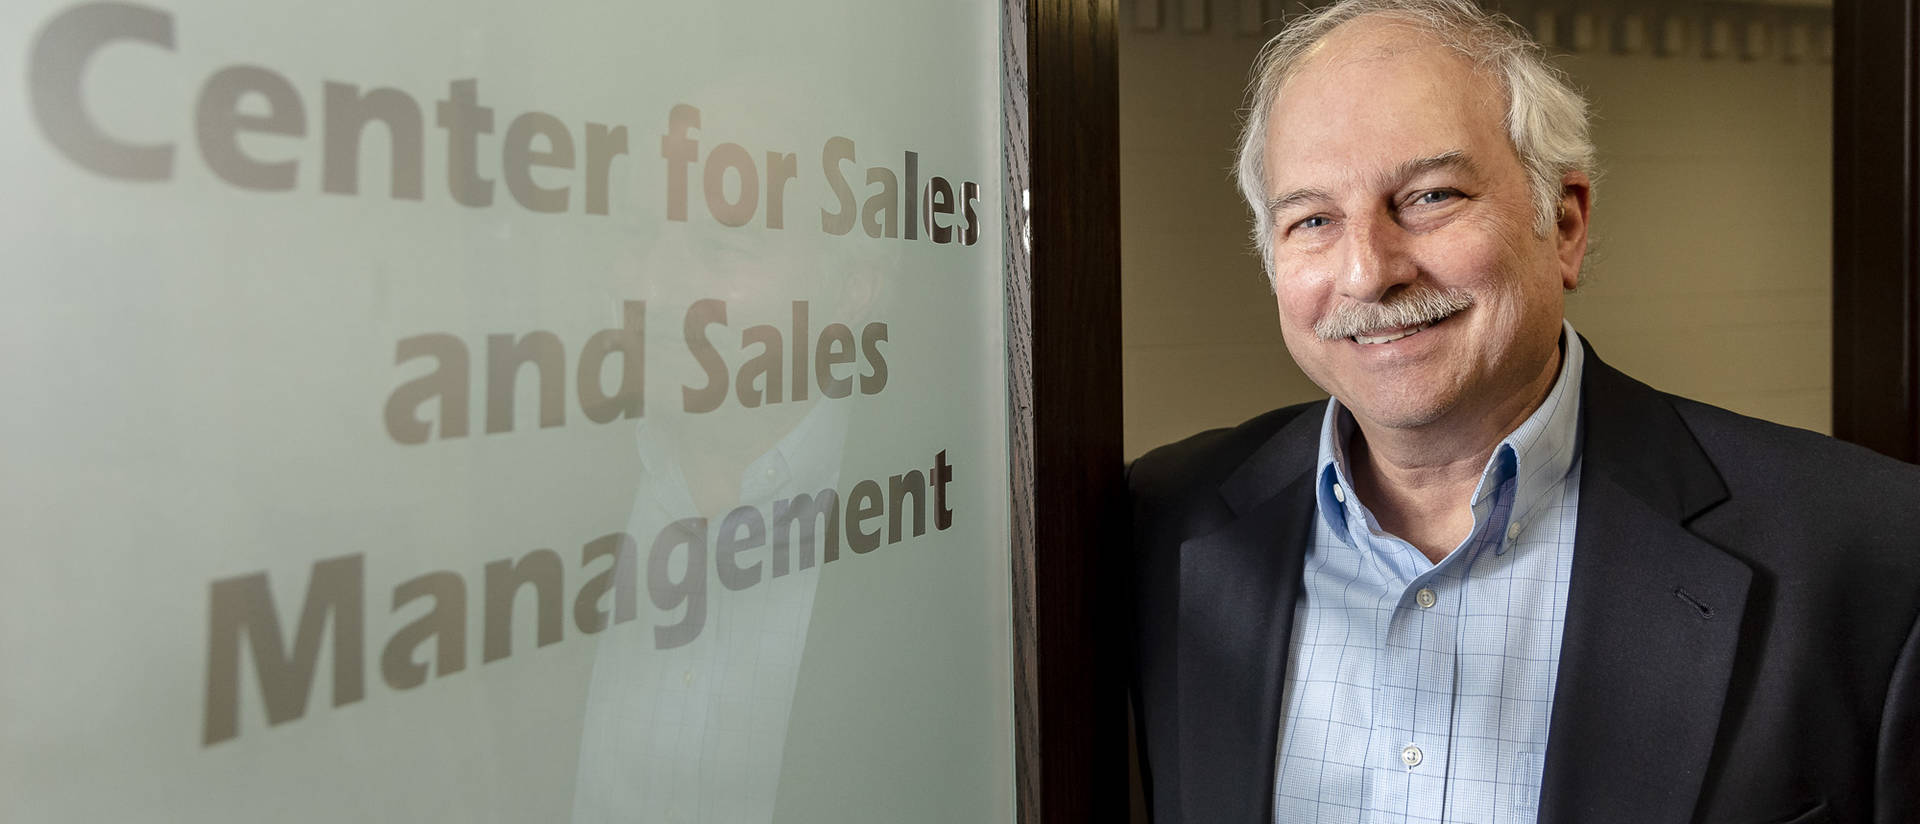 Dr. Robert Erffmeyer helped UW-Eau Claire build nationally recognized MBA and professional sales programs during his 30-year tenure.